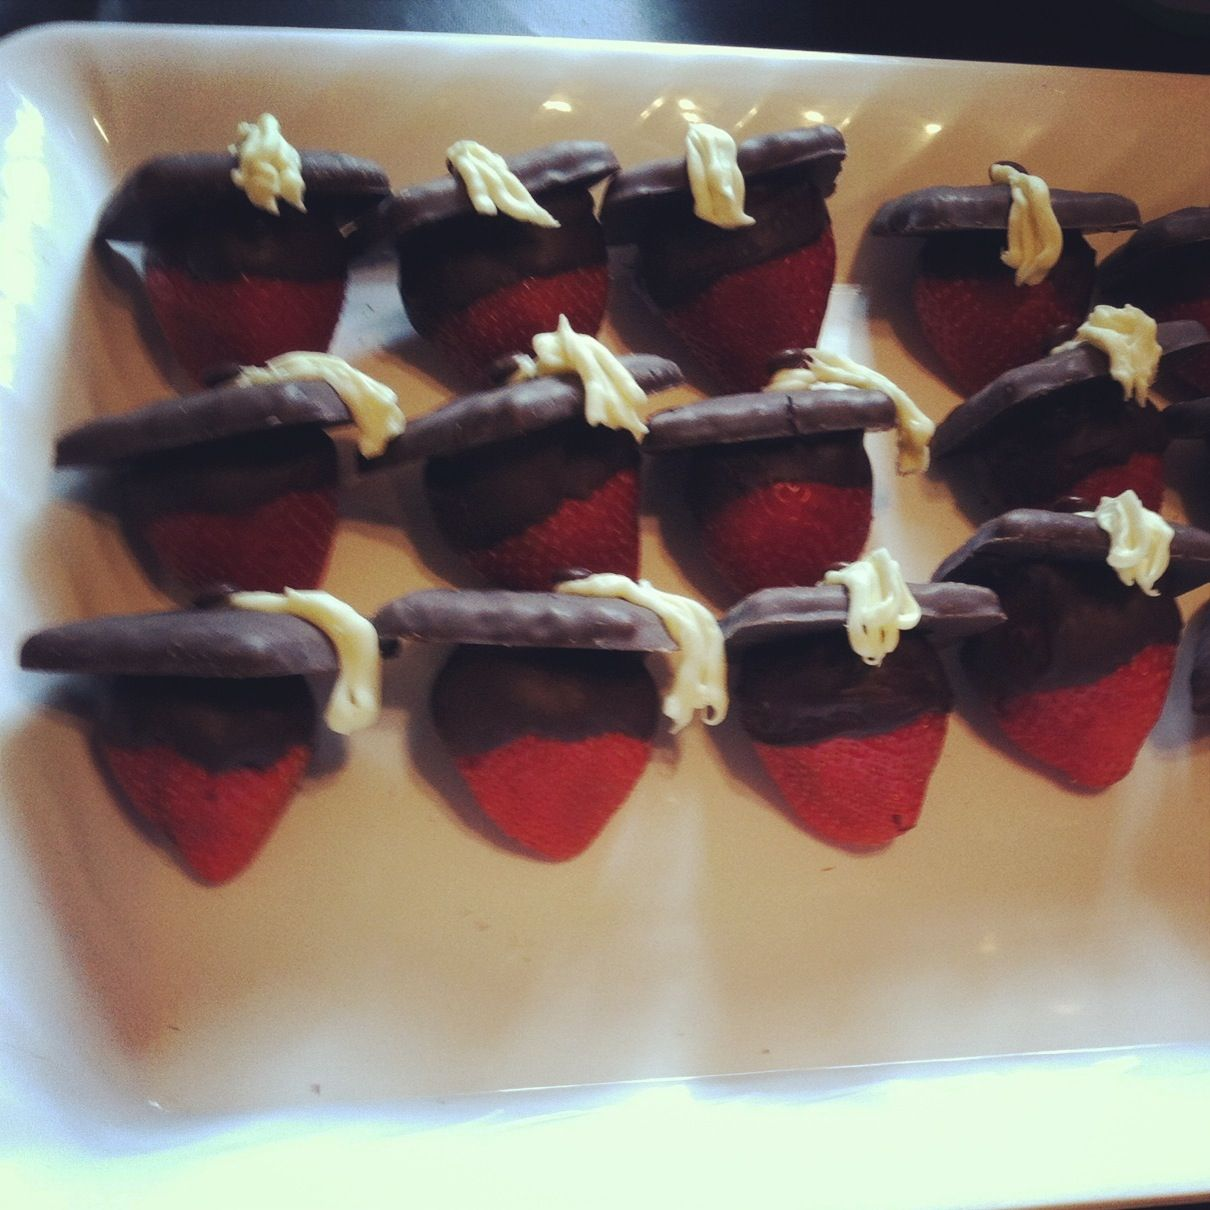 Dipped in chocolate strawberry graduation caps. Cute idea ...